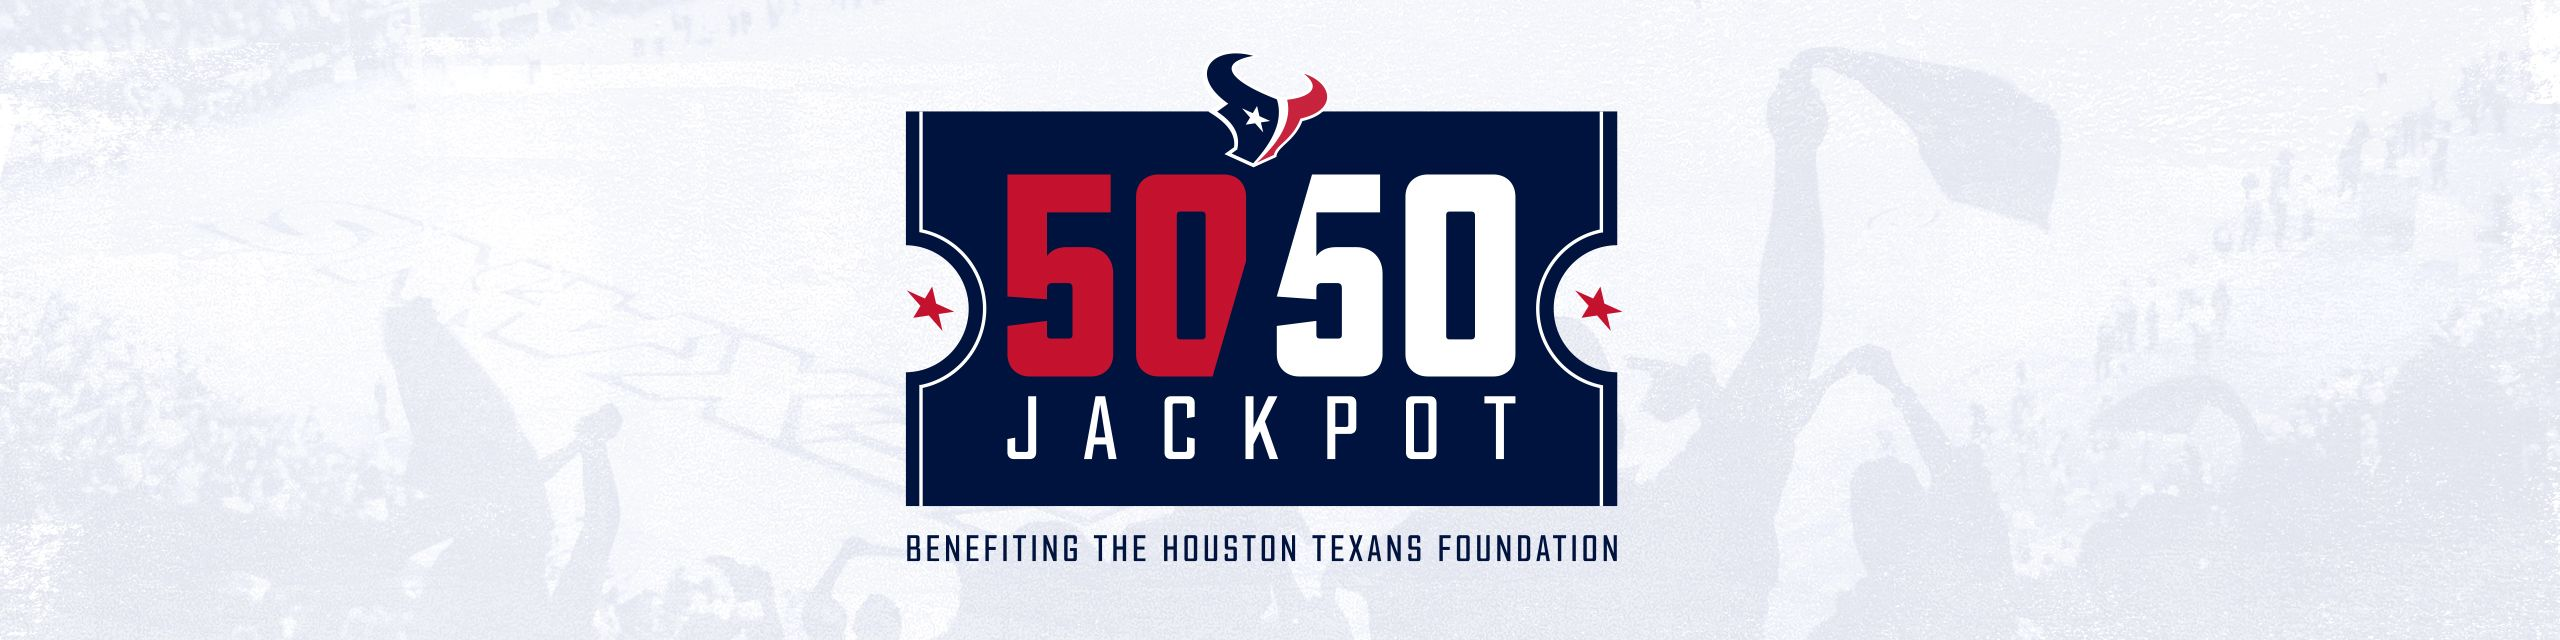 50/50 Jackpot: Benefiting the Houston Texans Foundation